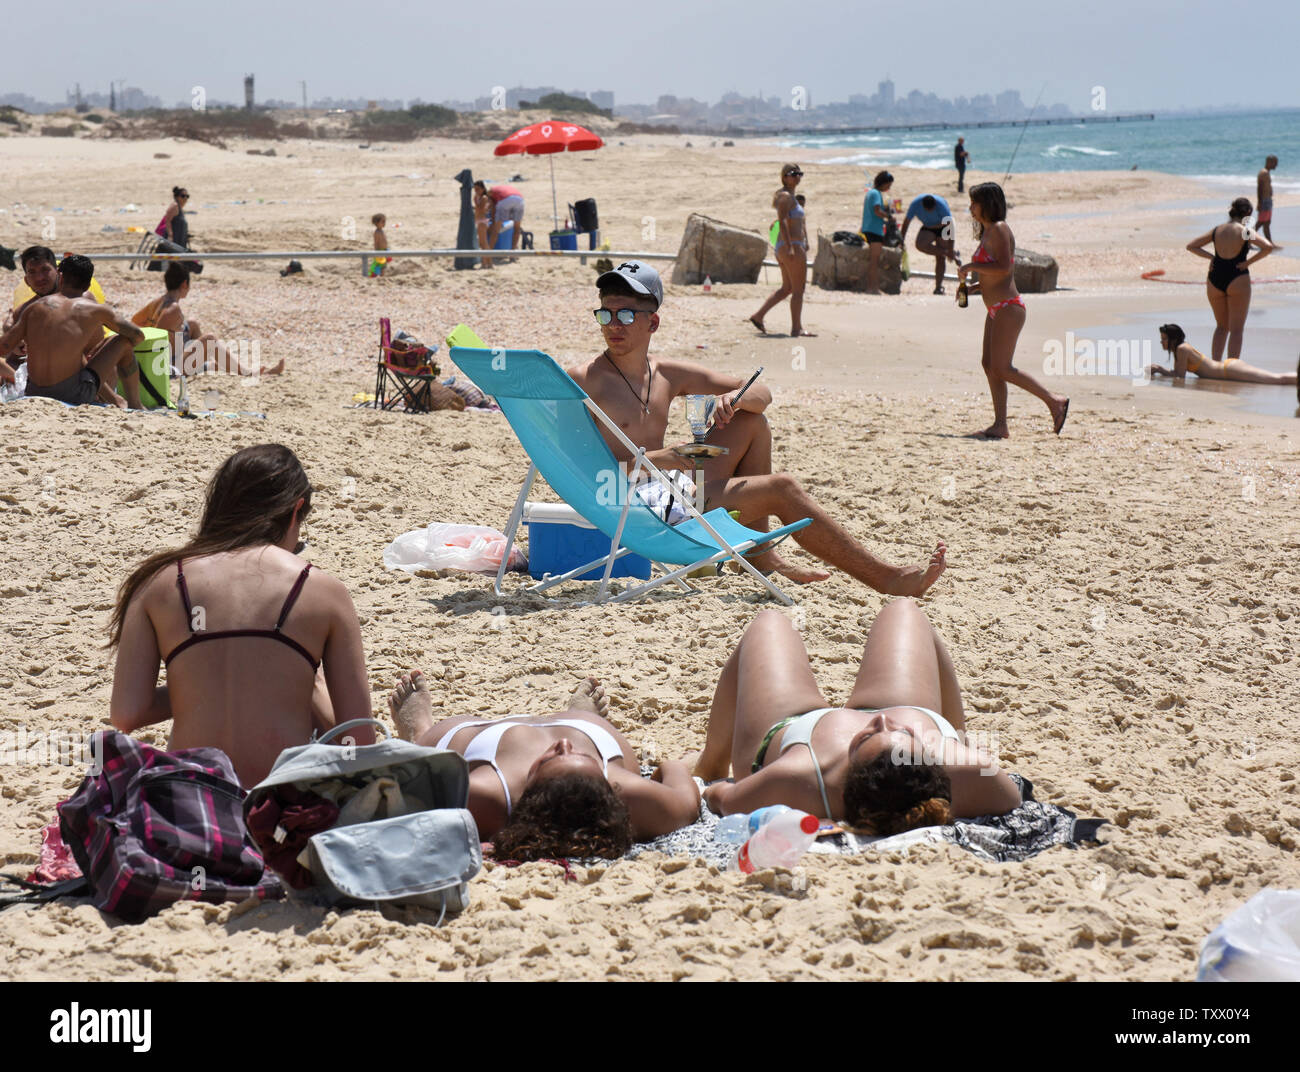 The Gaza skyline is seen in the distance behind Israelis enjoying temperatures reaching 105 degrees, at the Zikim Beach, Israel, near the Gaza Strip, May 18, 2018.  More than a hundred Palestinians have been killed by the Israeli army in protests along the Israel-Gaza border in recent weeks.   Photo by Debbie Hill/UPI - Stock Image